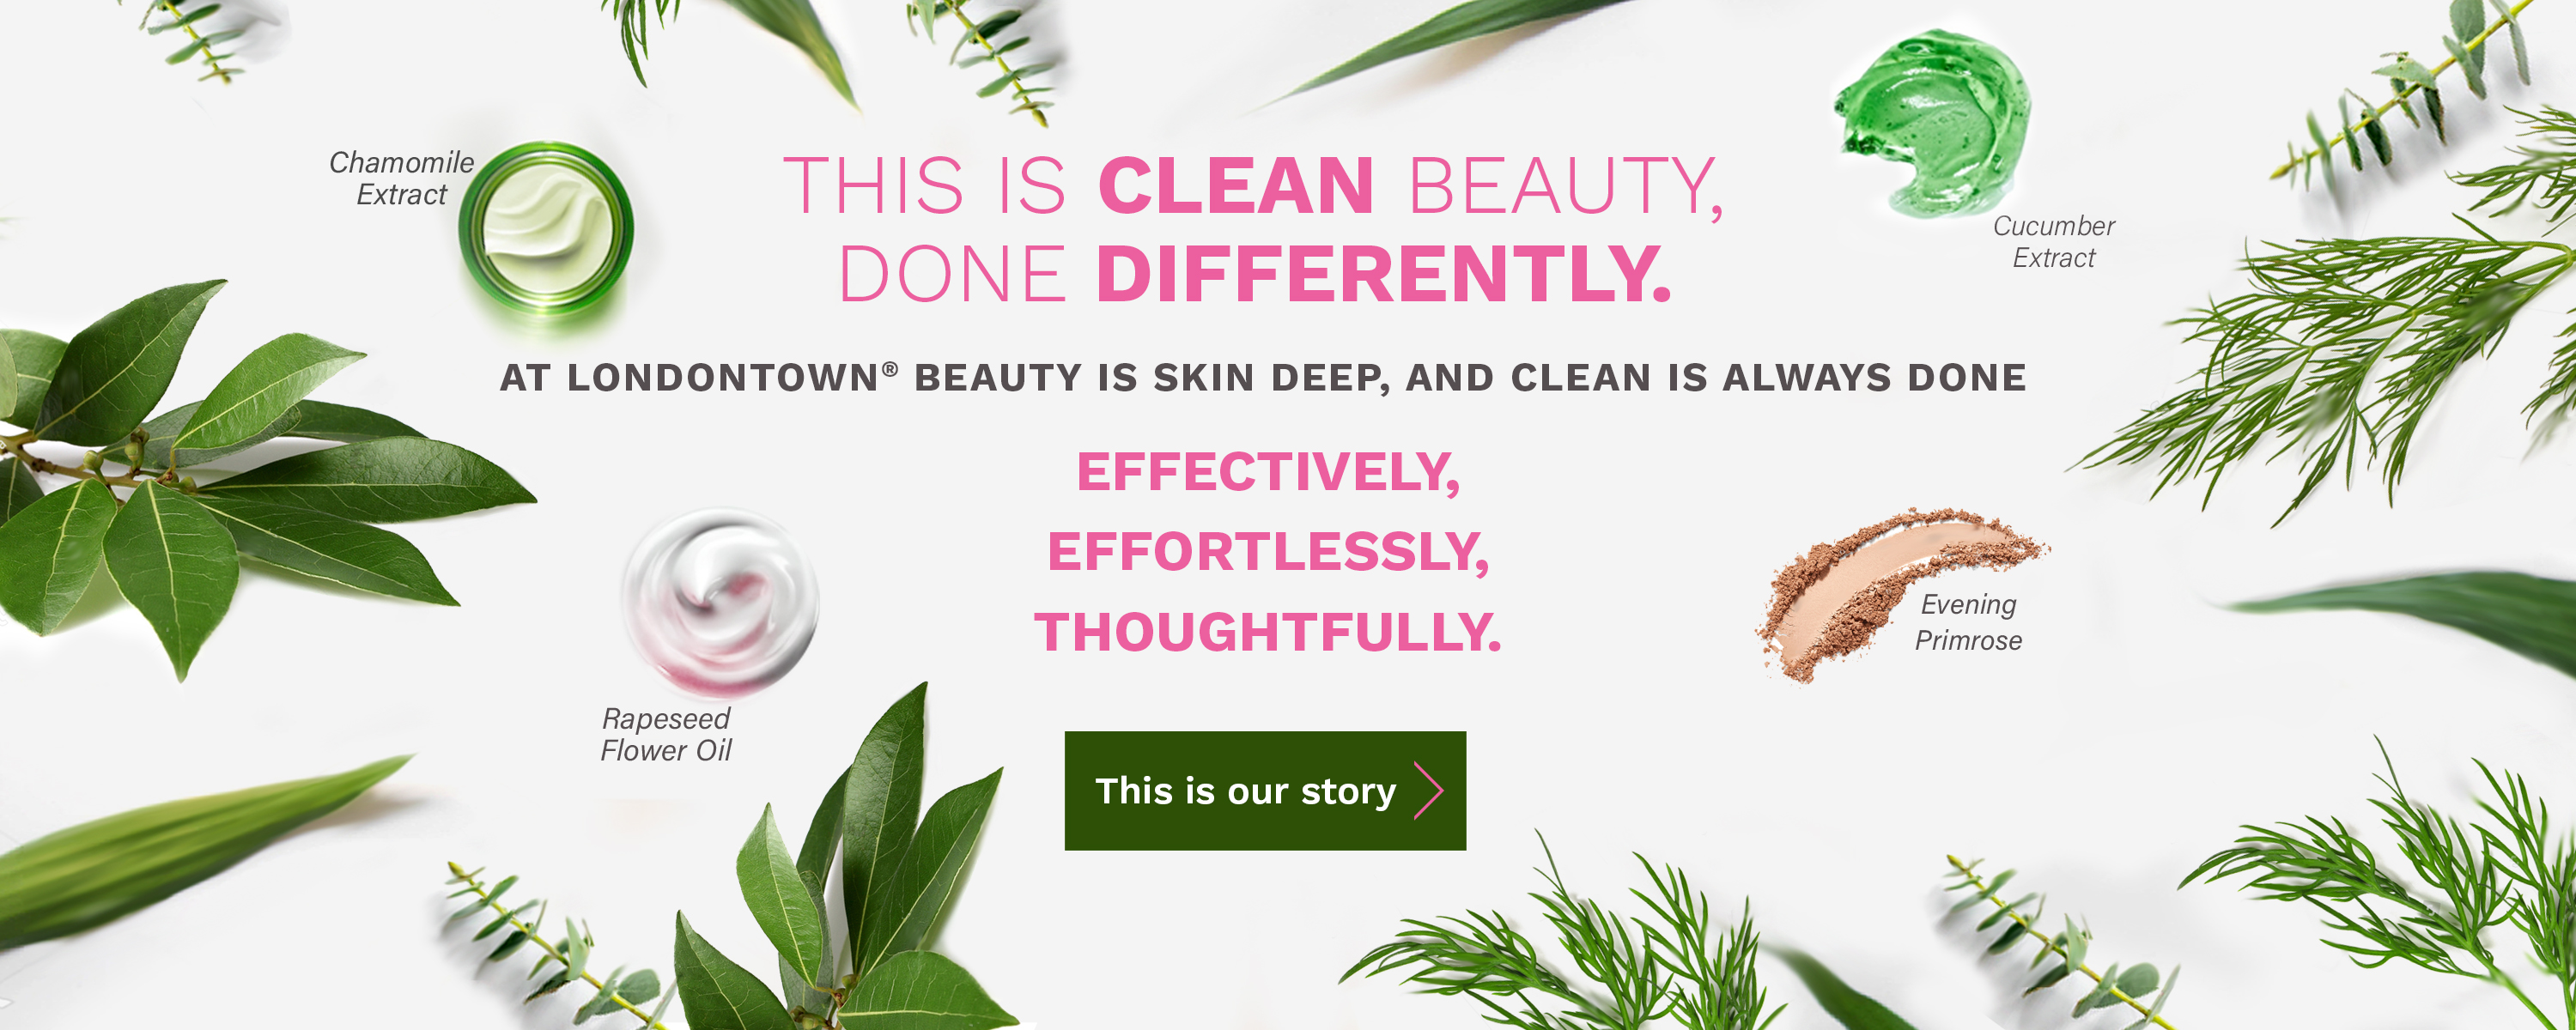 About Us: This is clean beauty